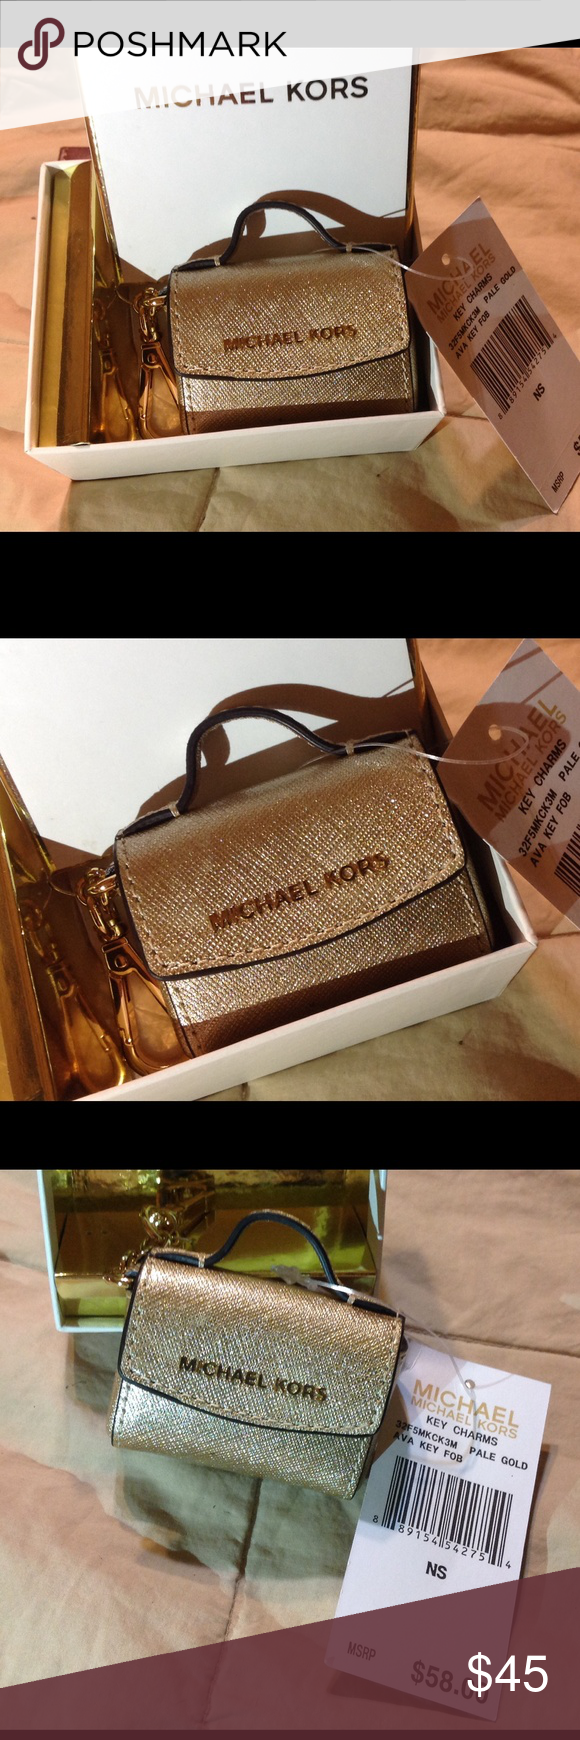 Michael KORS Gold bag keychain NWT Michael KORS key charm.  This is a pale gold hand bag  with a snap closure that opens...very cute!  New in original gift box with tag   NO TRADES Michael Kors Accessories Key & Card Holders